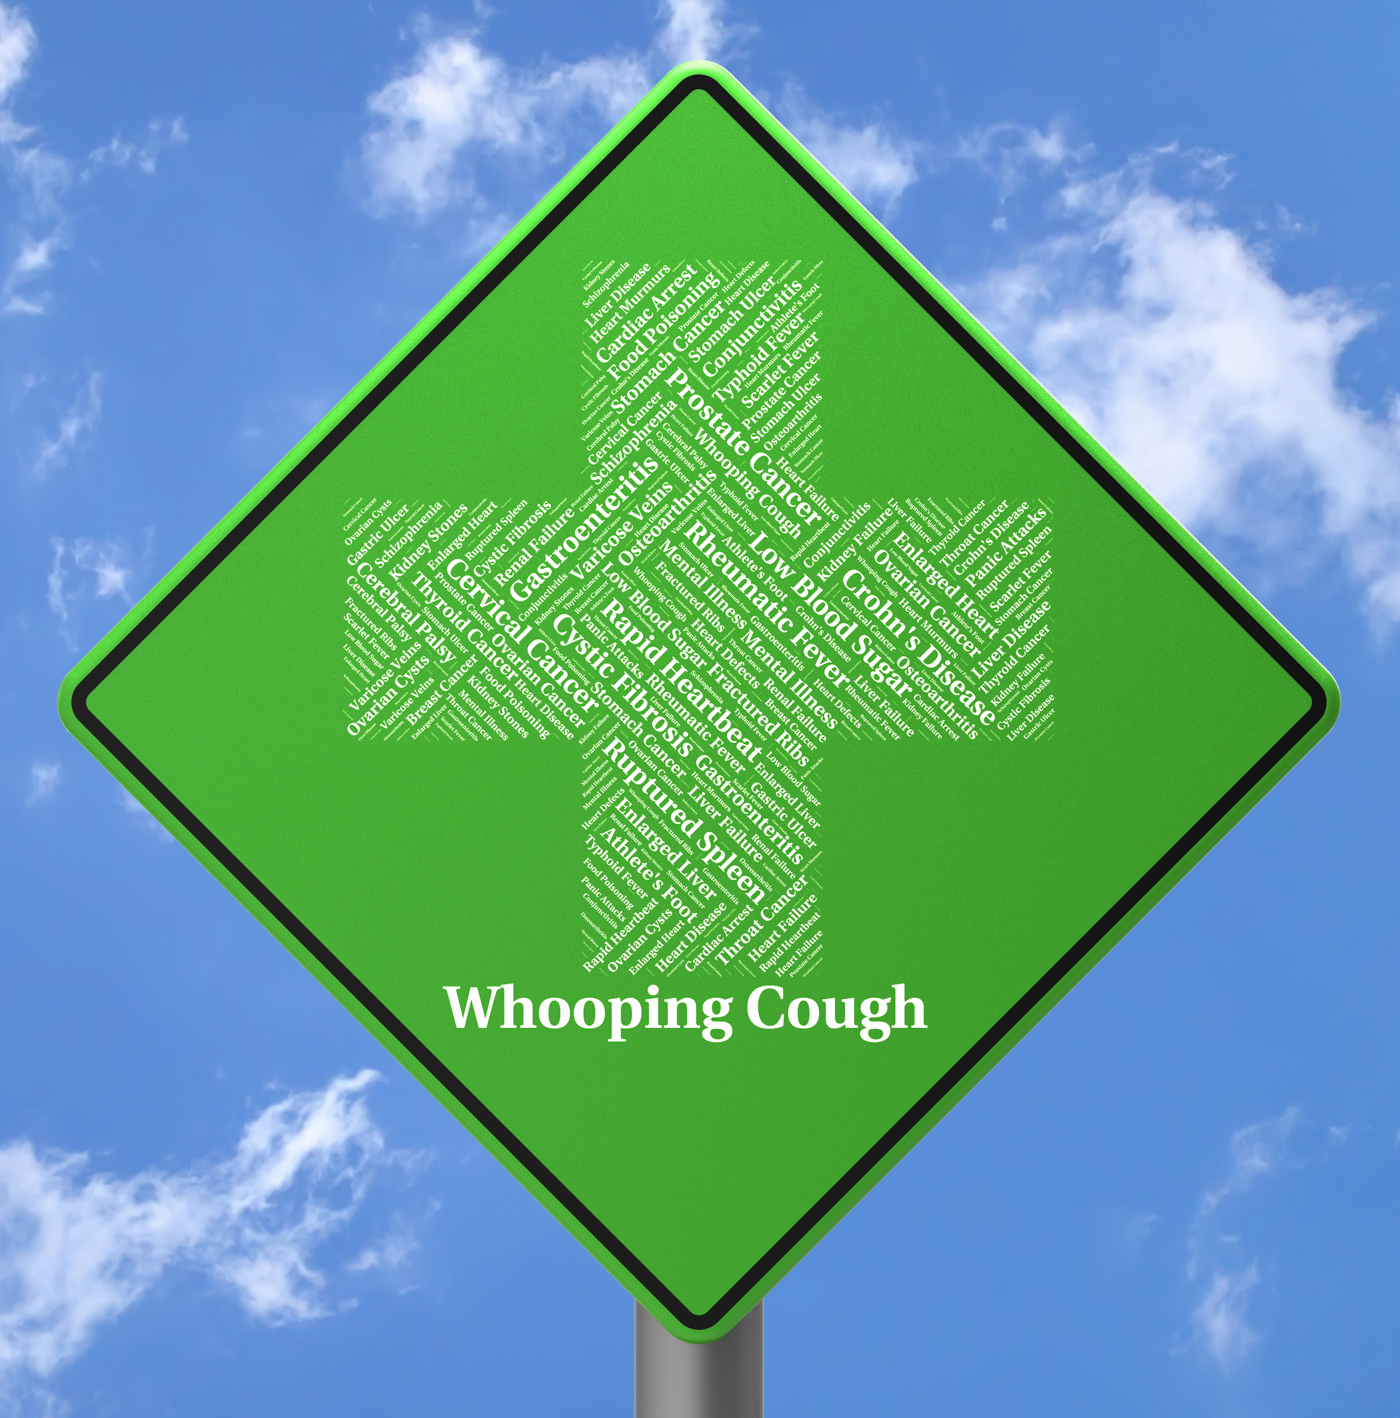 Whooping cough indicates bordetella pertussis and affliction photo